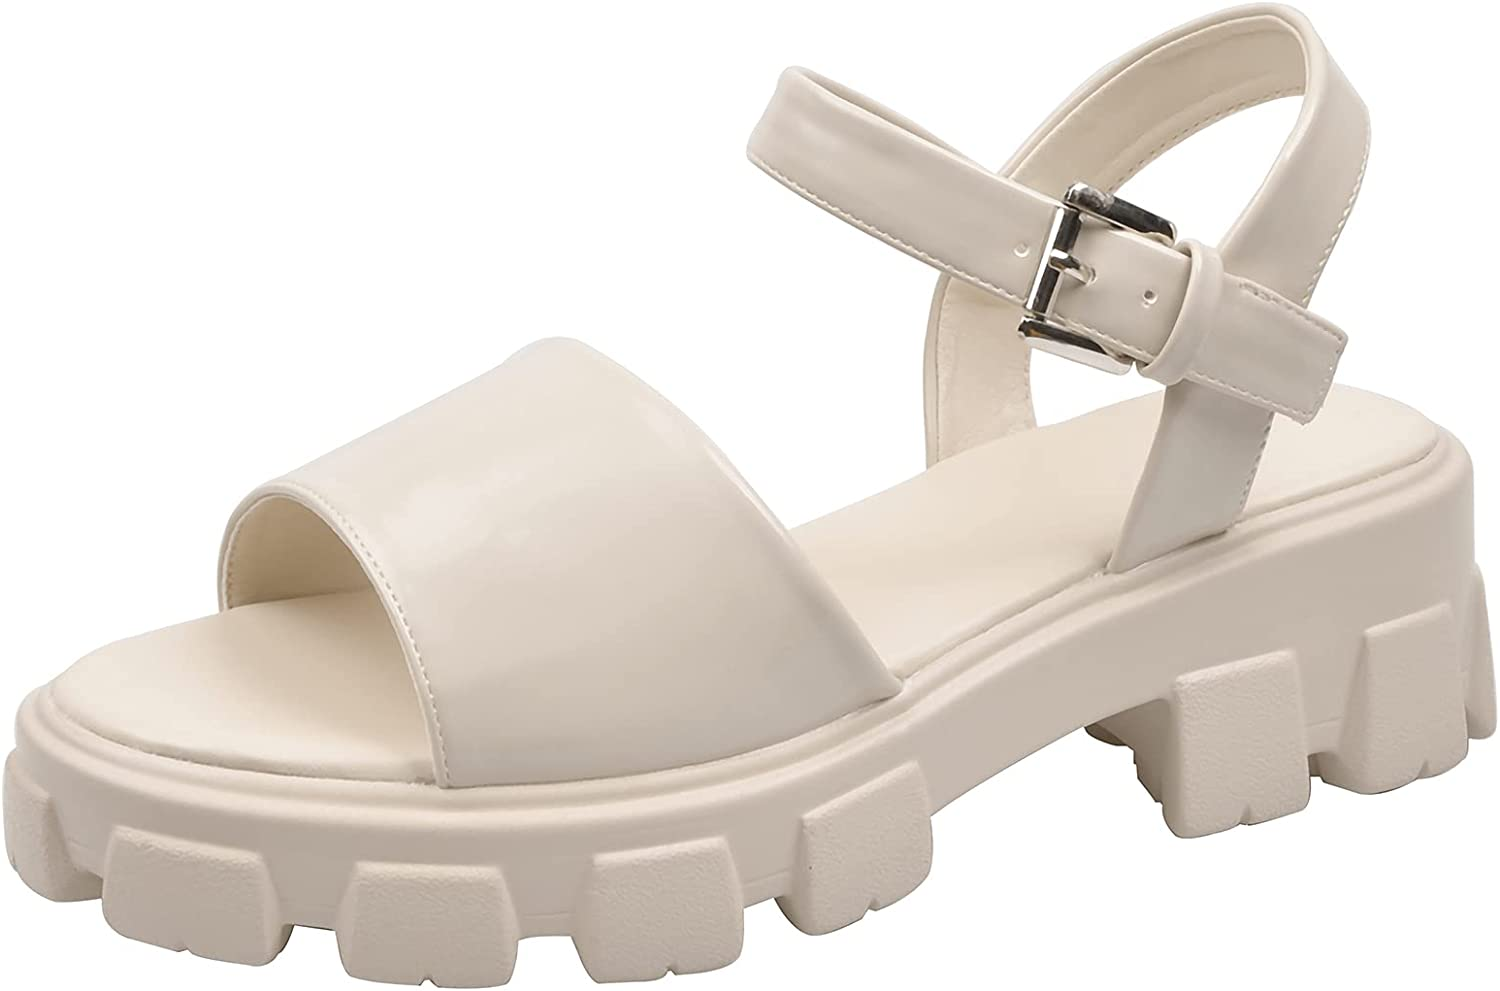 Mid-heeled high-heeled low-heeled ultra-light PU sole ladies sandals soft and comfortable insole